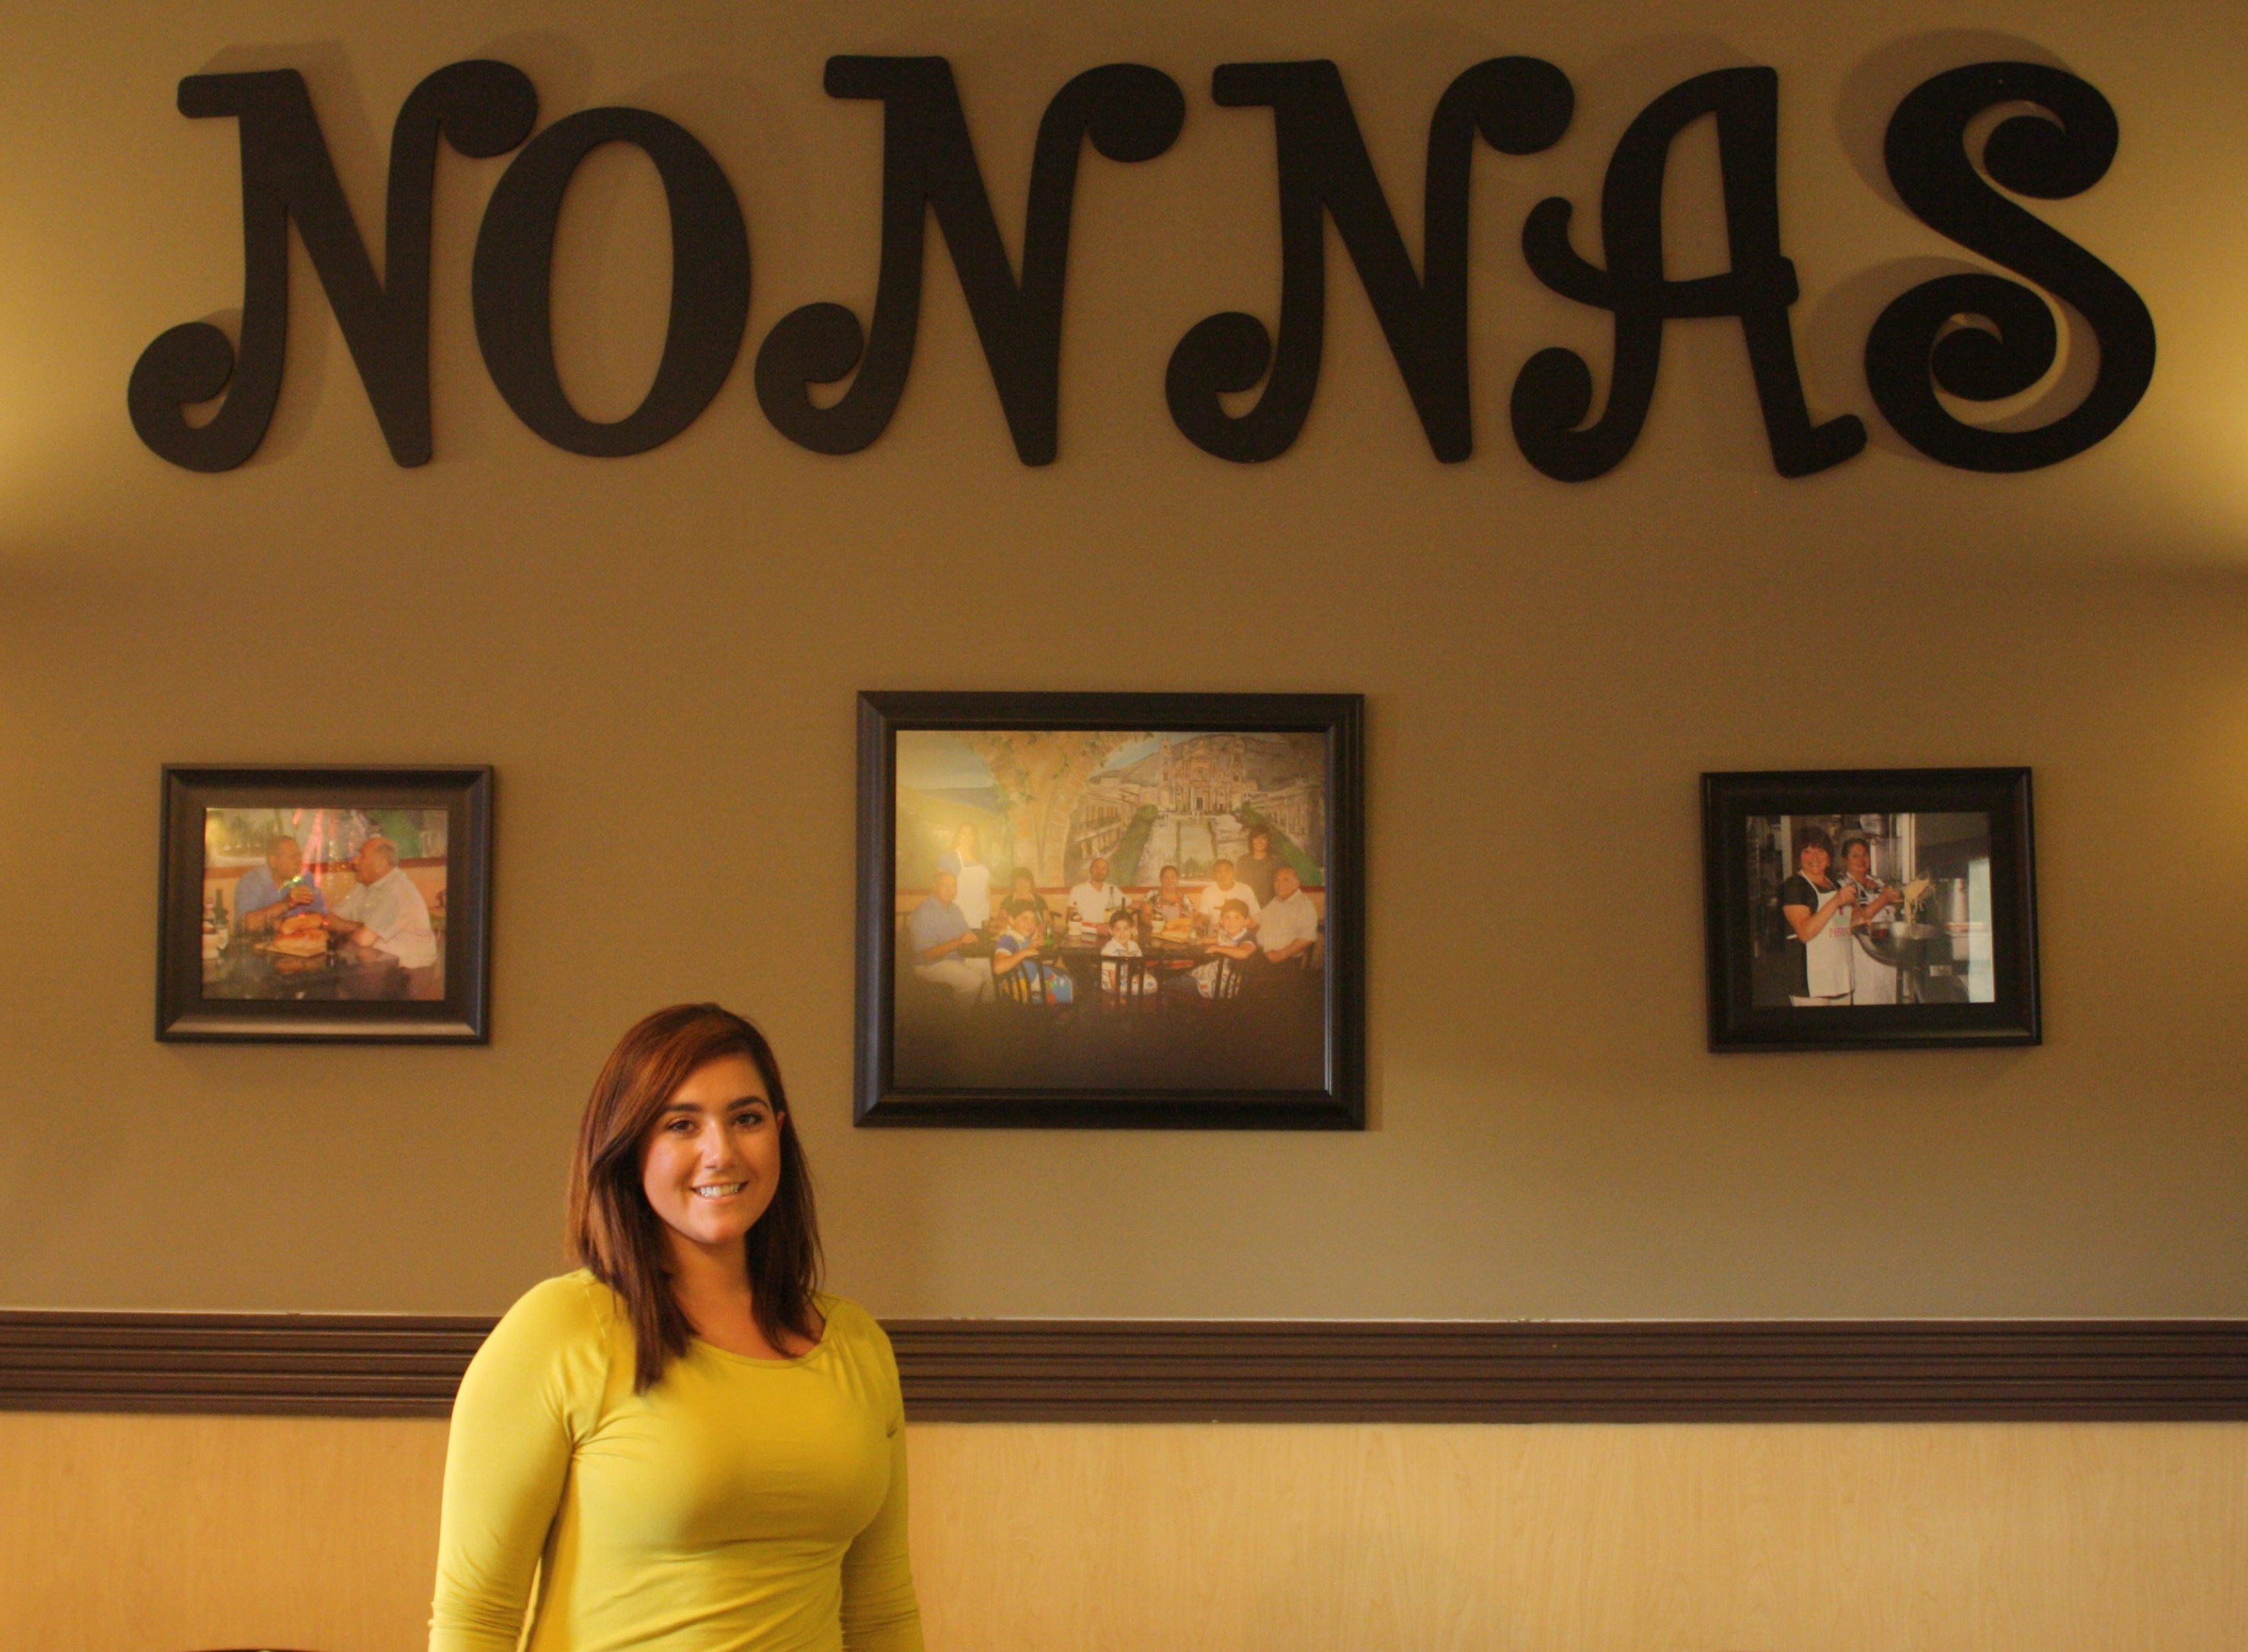 nonna's italian kitchen: where you're treated like family | ou